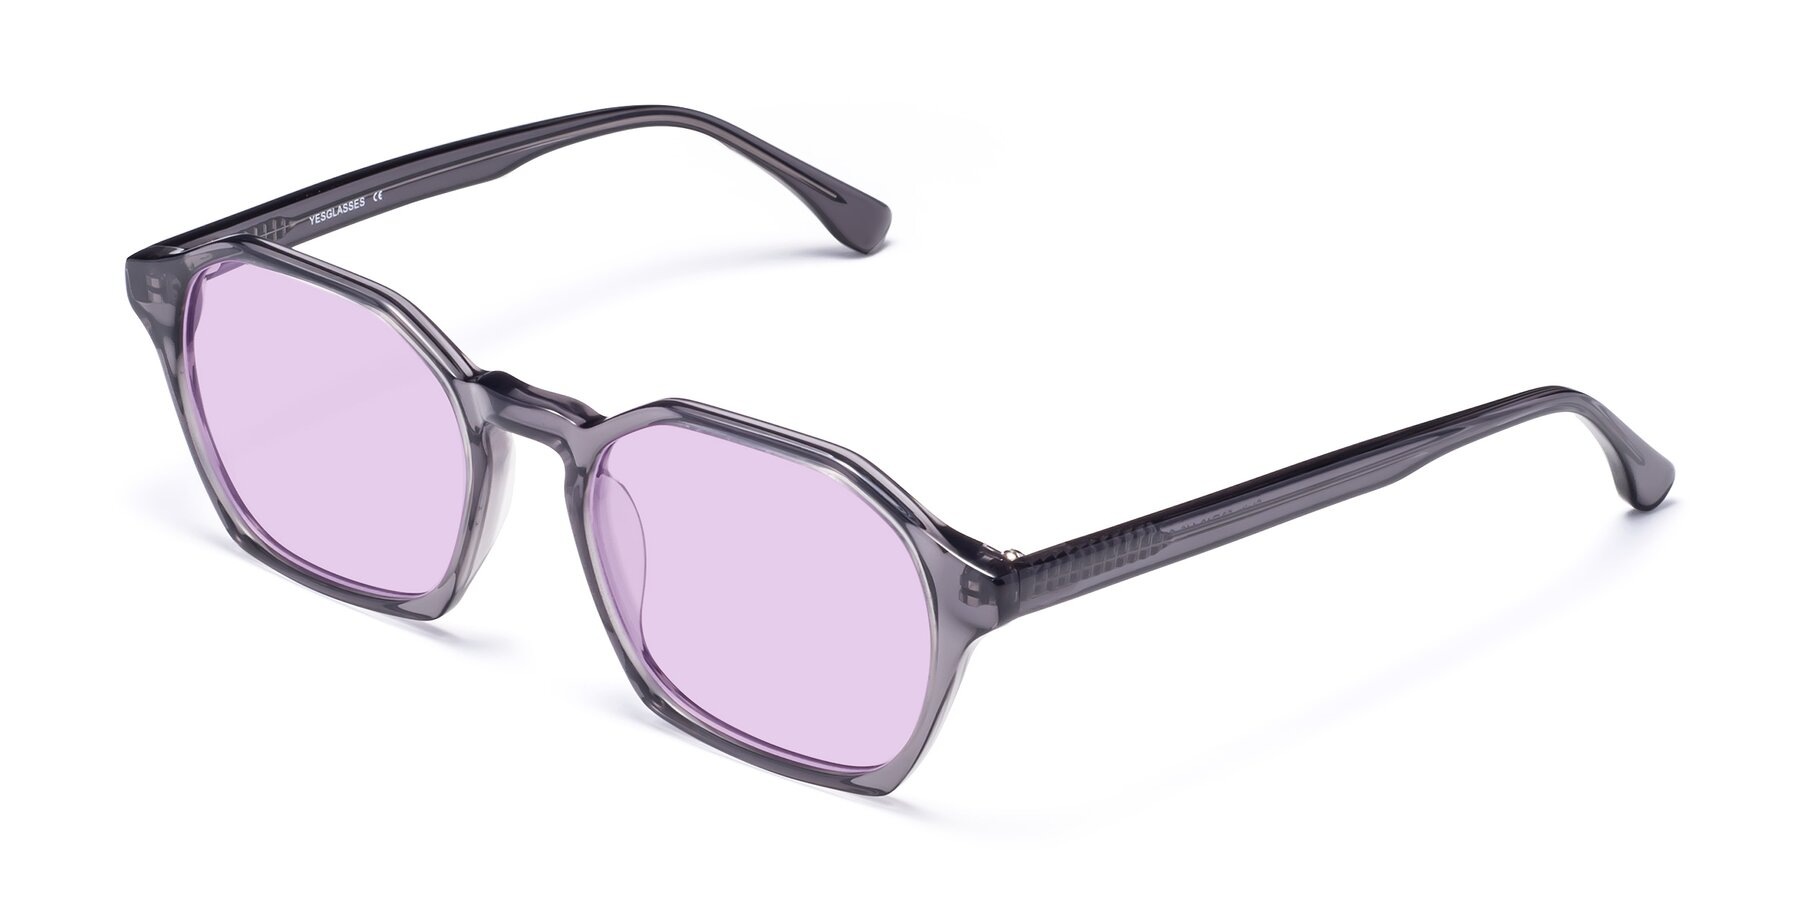 Angle of Stoltz in Translucent Gray with Light Purple Tinted Lenses